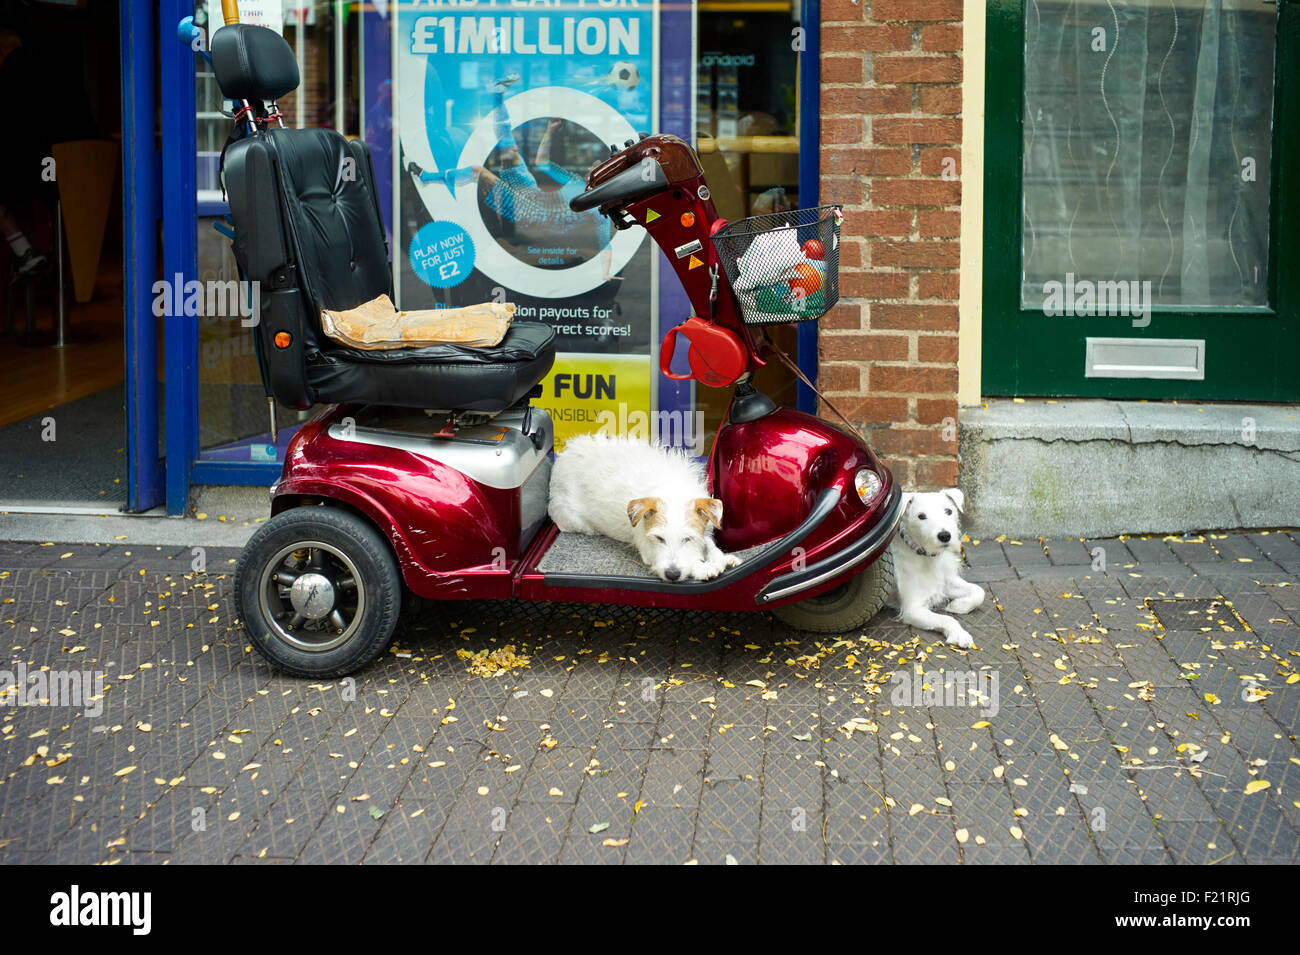 Mobility scooter outside a betting shop with two small dogs waiting - Stock Image